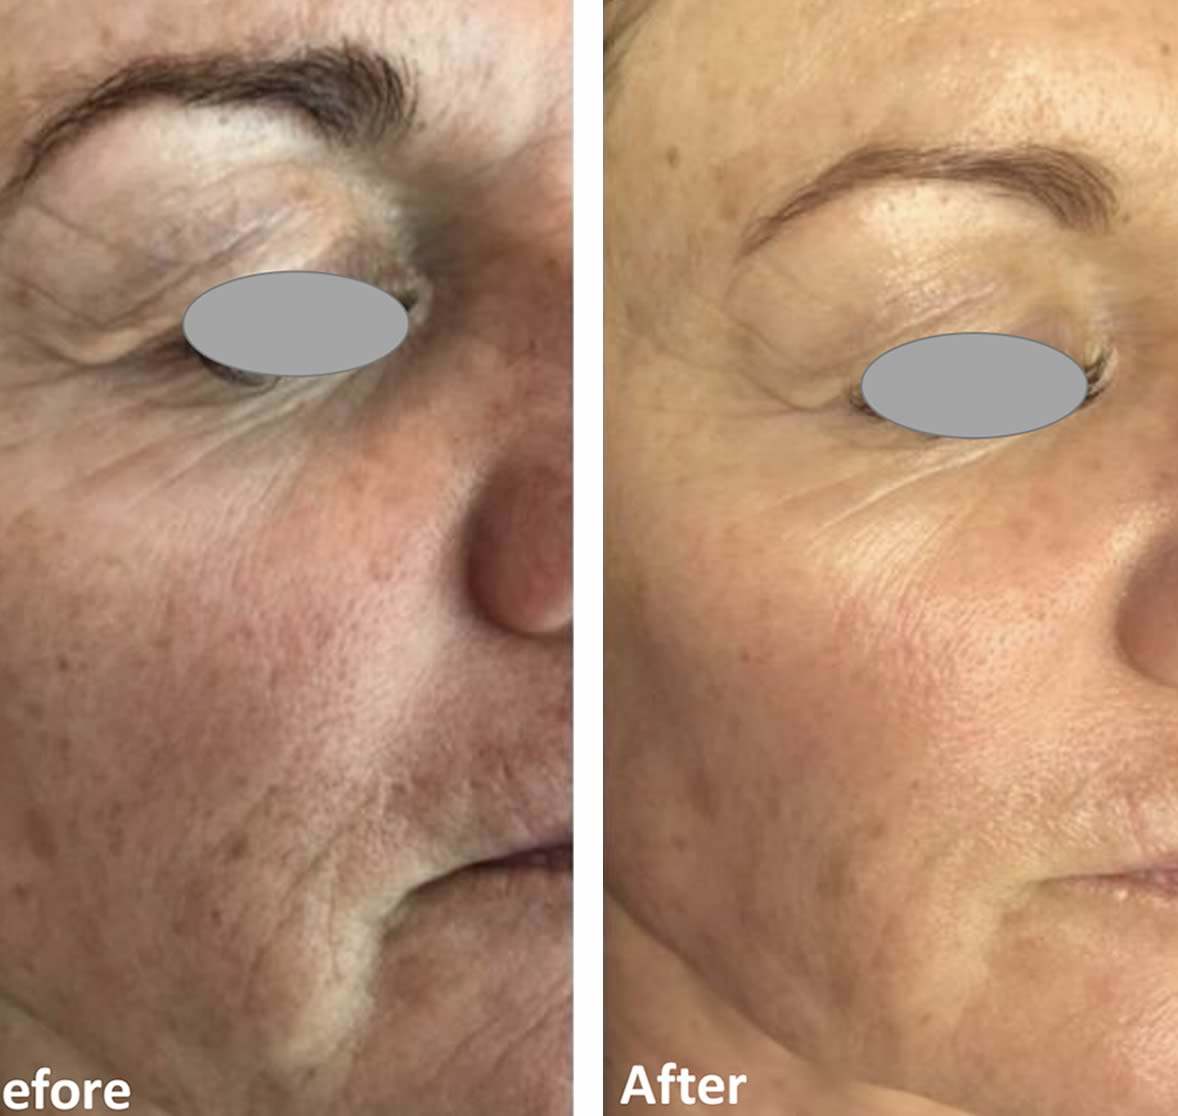 TIXEL treatment for wrinkles